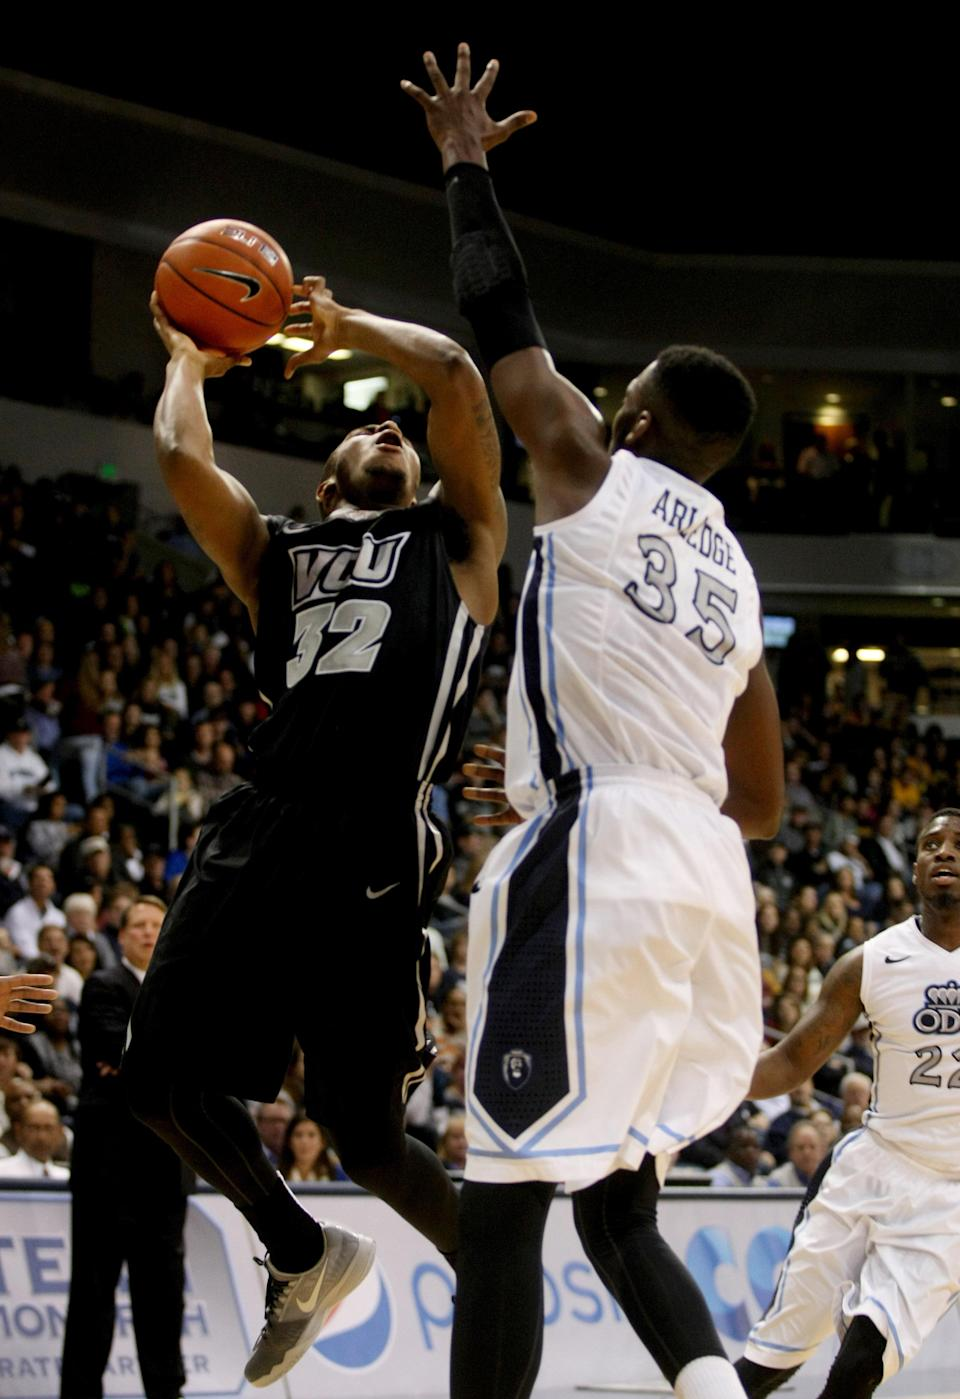 Virginia Commonwealth's Melvin Johnson (32) shoots over Old Dominion's Jonathan Arledge (35) during the first half of their NCAA college basketball game, Saturday, Nov. 29, 2014 at the Constant Center in Norfolk, Va. (AP Photo/Jason Hirschfeld)